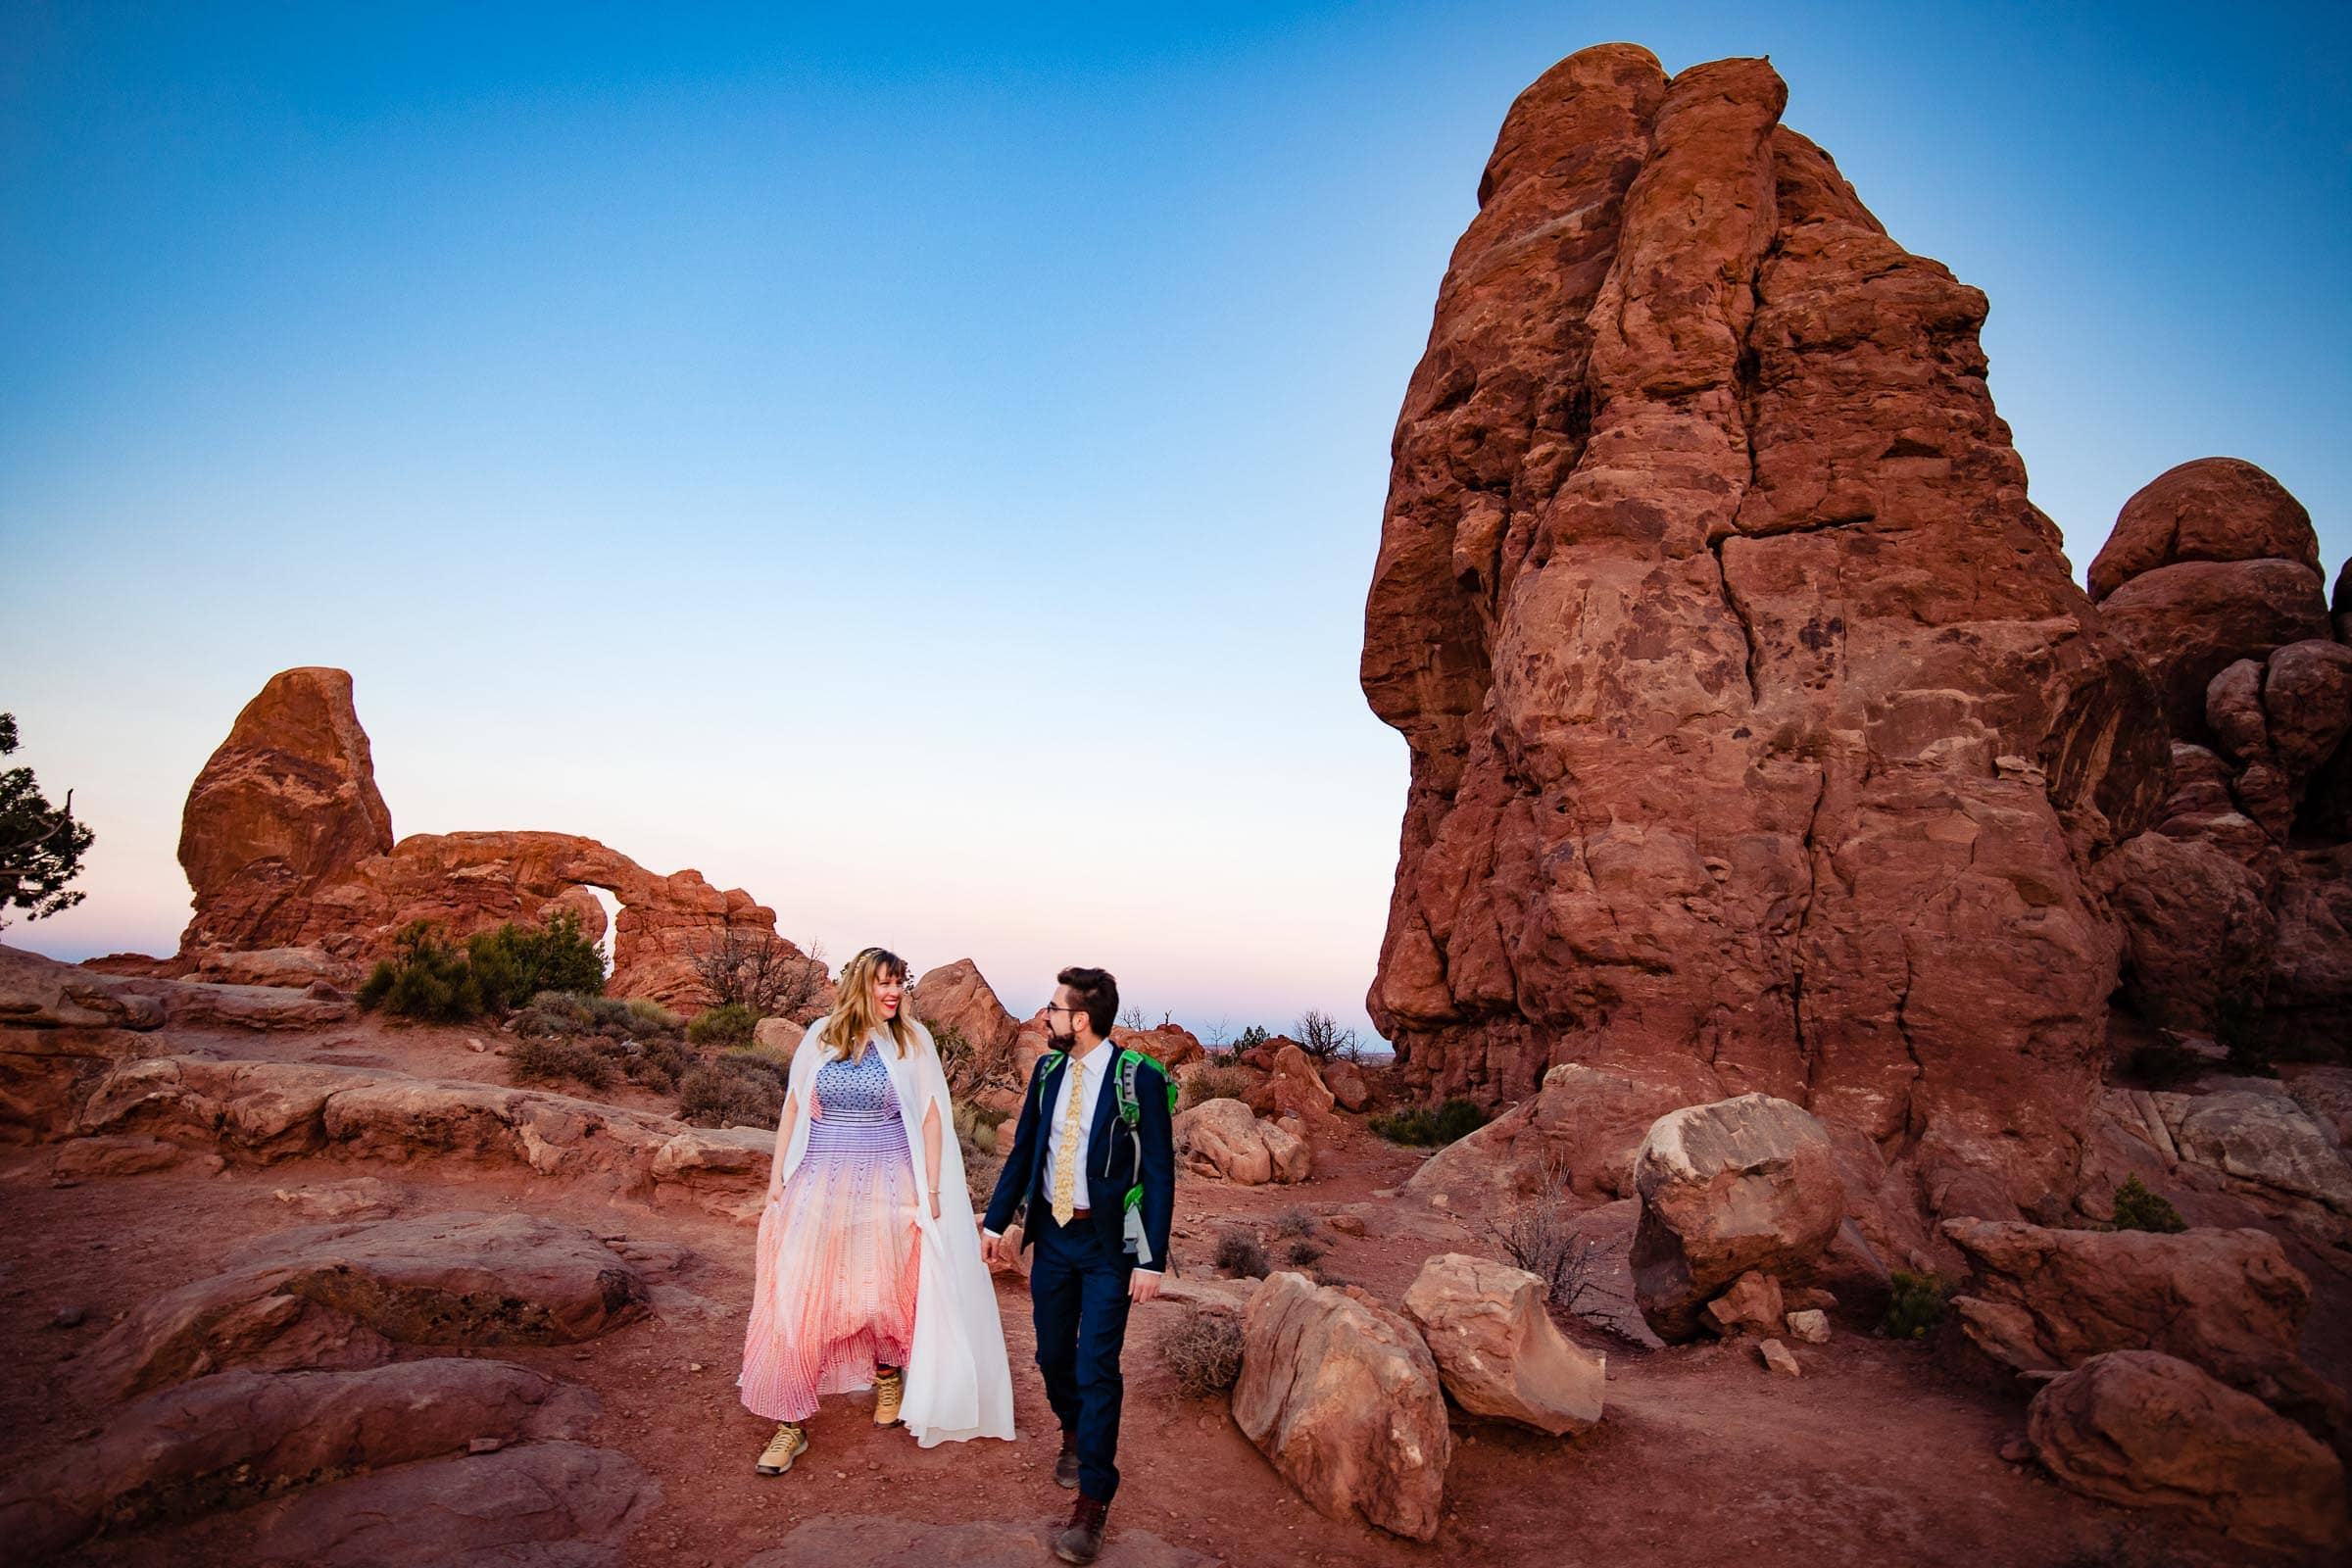 Bride and groom walking through Arches National Park for their adventure elopement.